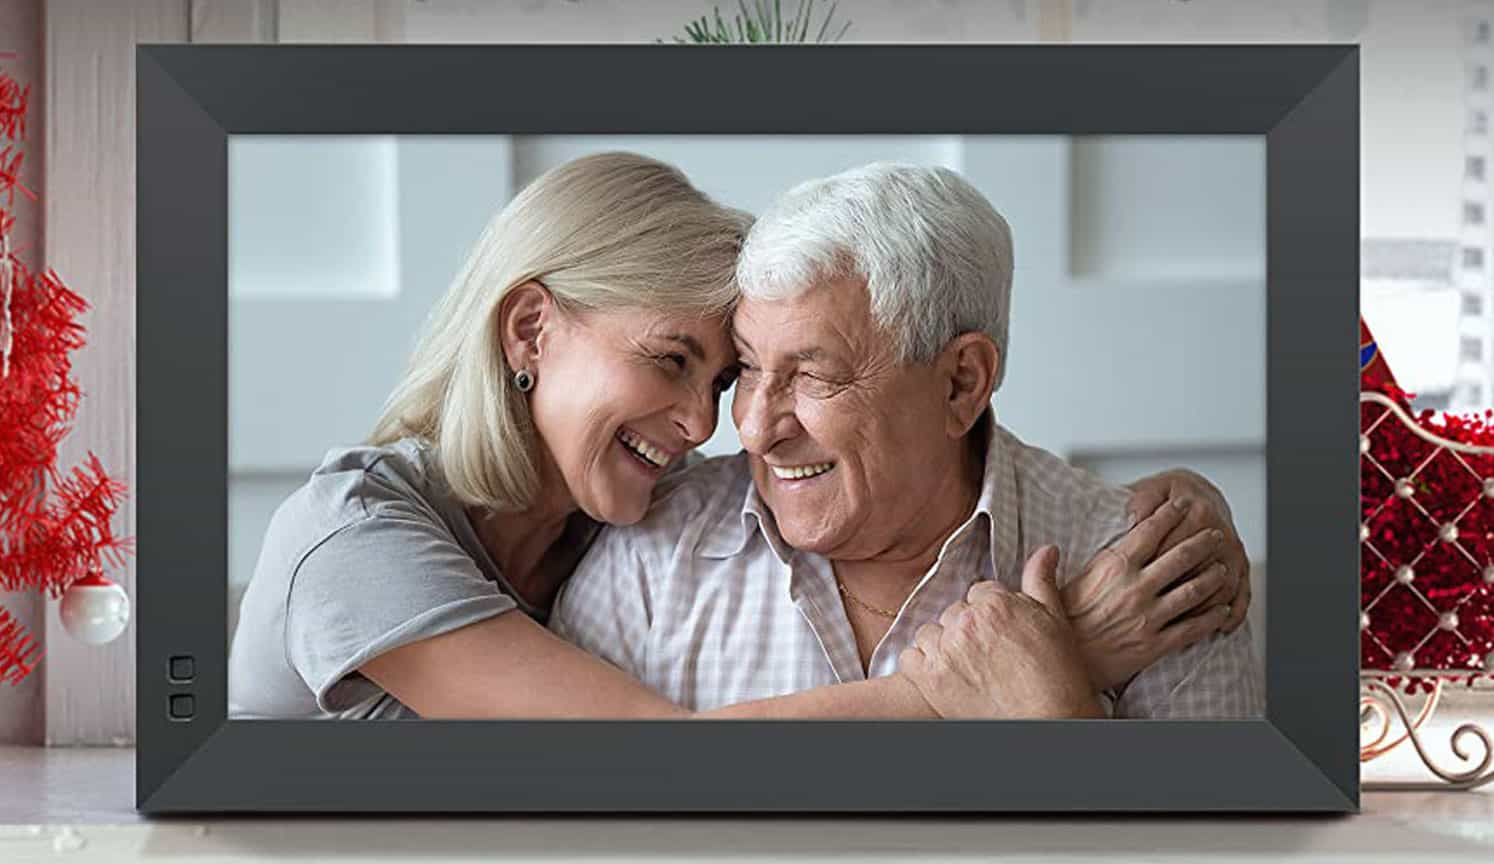 Flourished senior couple picture in a large digital picture frame